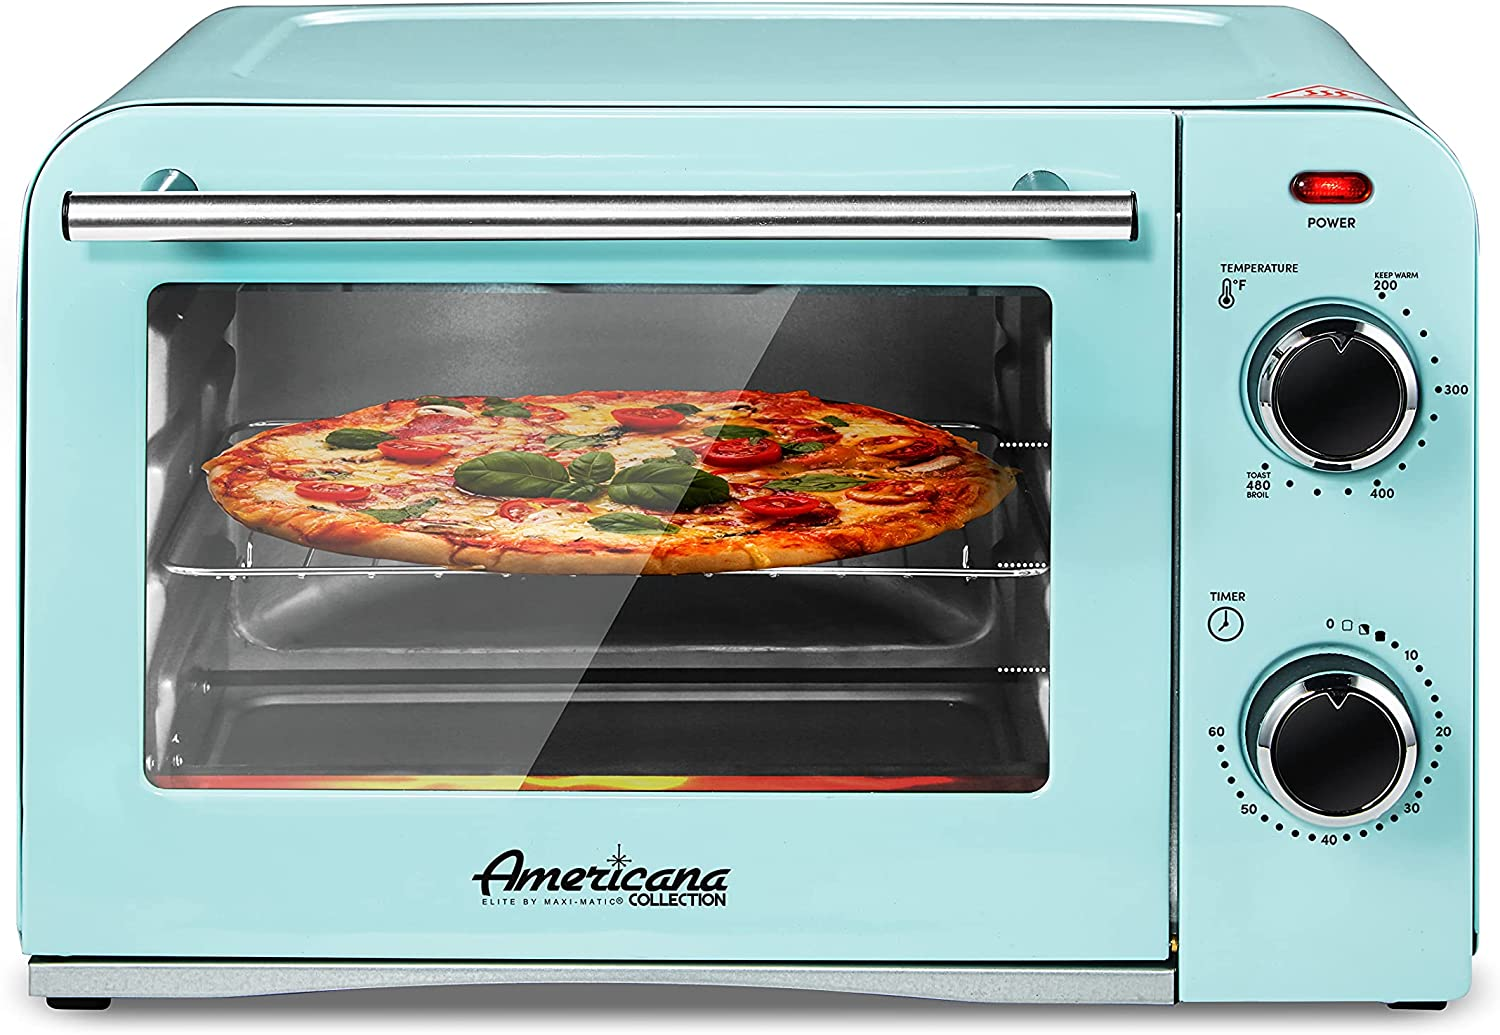 """Elite Gourmet Americana ETO1214BL Fits 9"""" Pizza, Vintage Diner 50's Retro Countertop Toaster oven Bake, Broil, Toast, Temperature Control & Adjustable 60-Minute Timer, Glass Door Printed Wrong"""